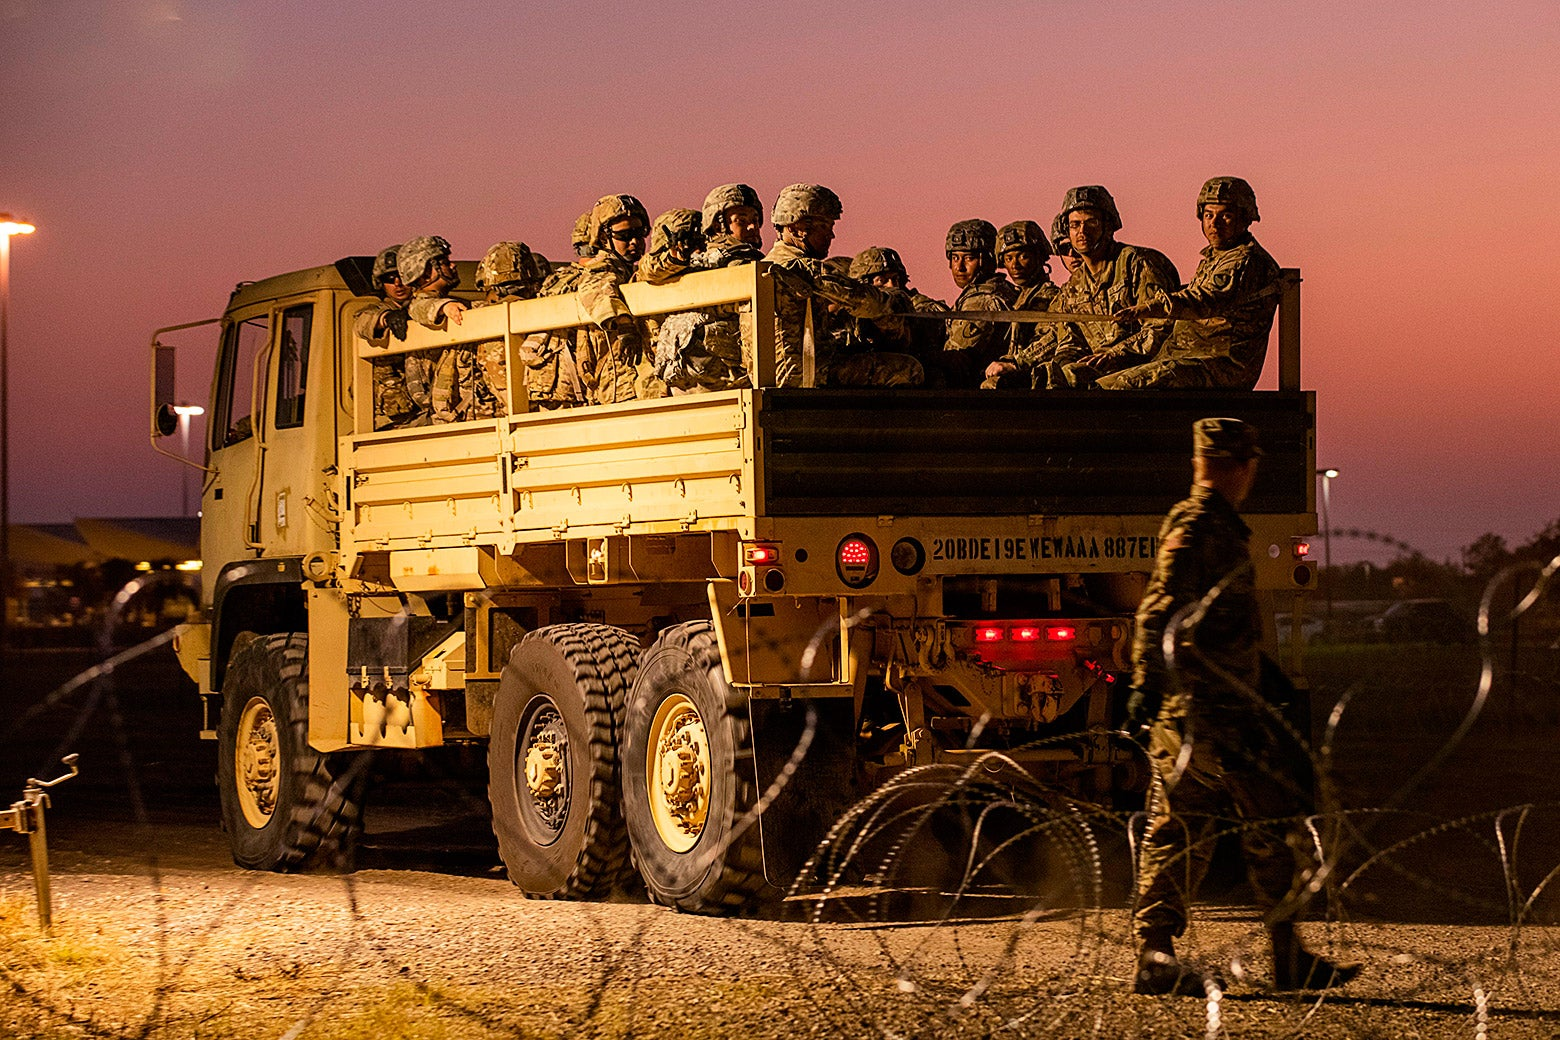 U.S. Army troops enter a compound where the military is erecting an encampment near the U.S.-Mexico border crossing.